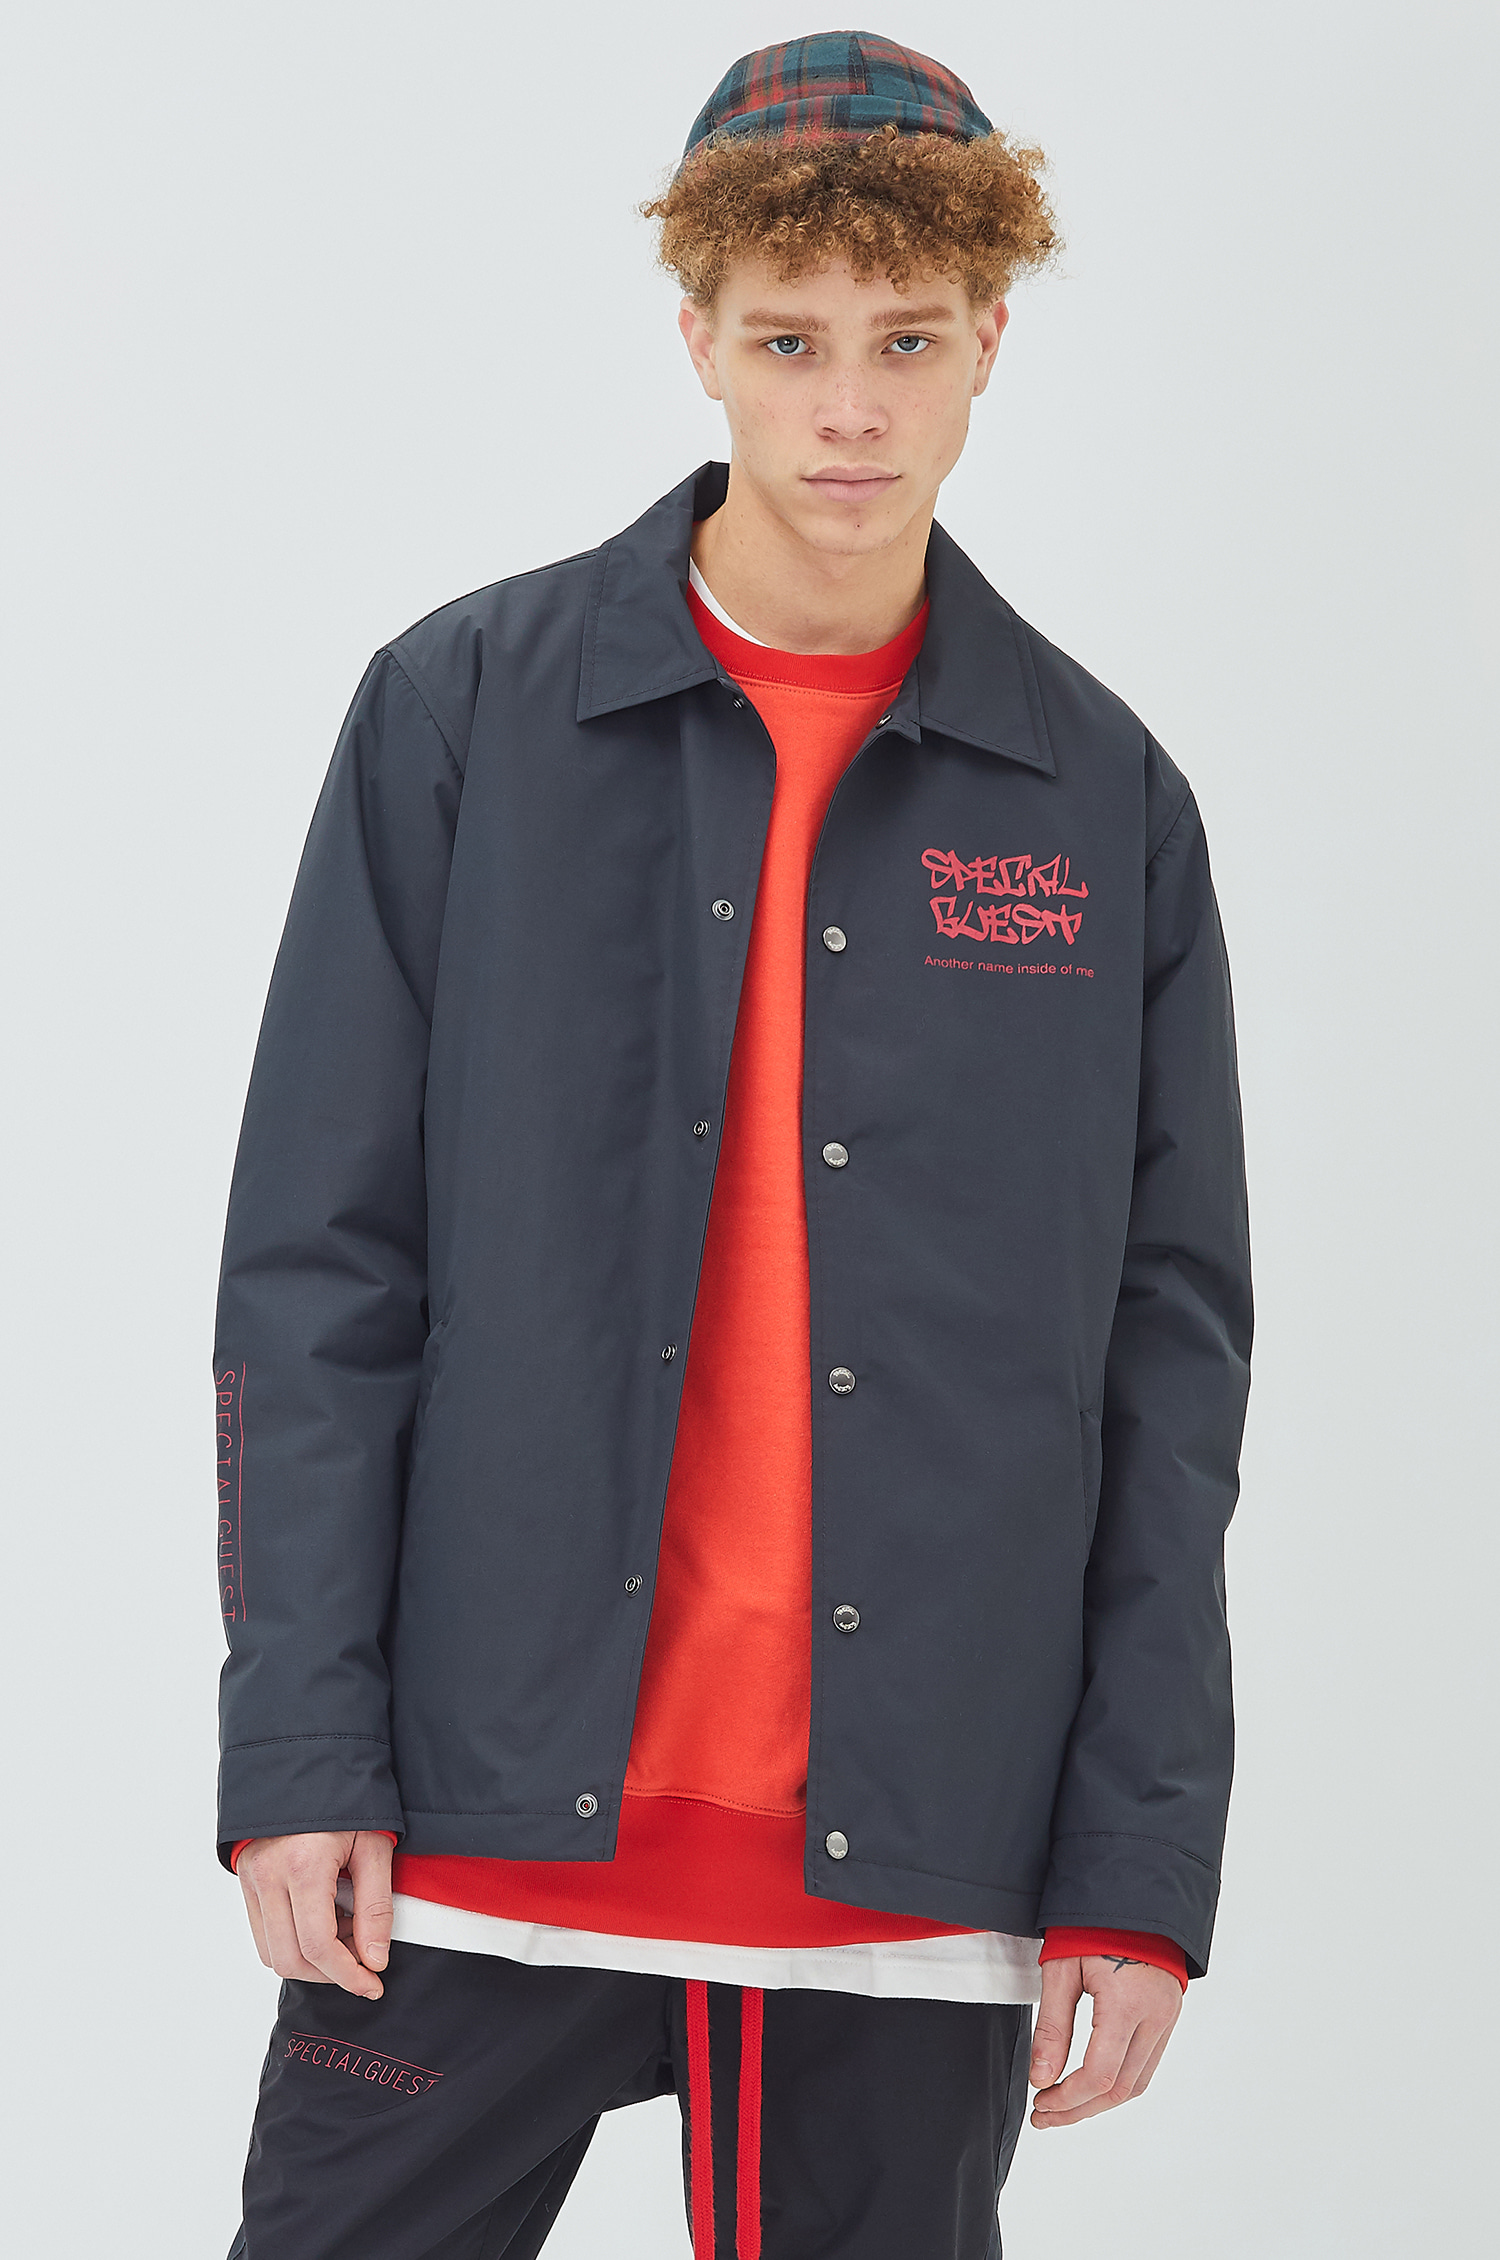 Warm Coach Jacket - FACE DG